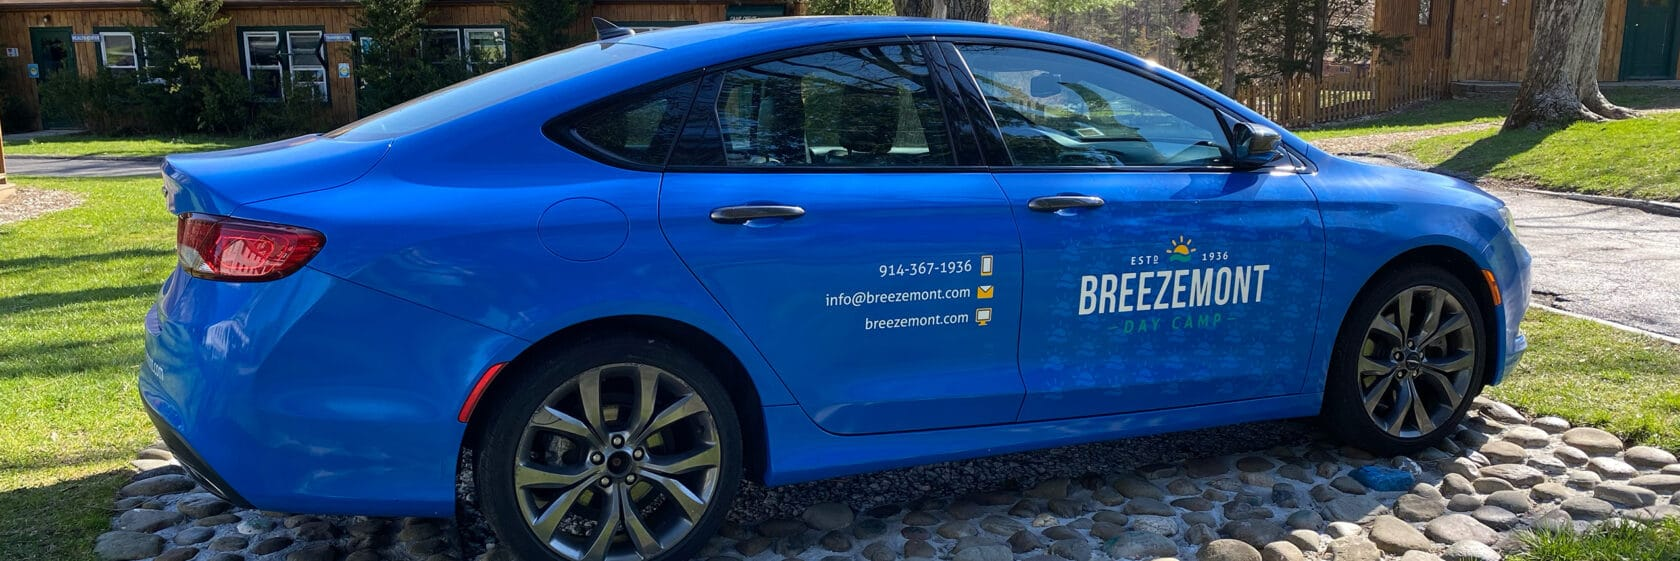 Our specially wrapped car with Breezemont Logo in blue